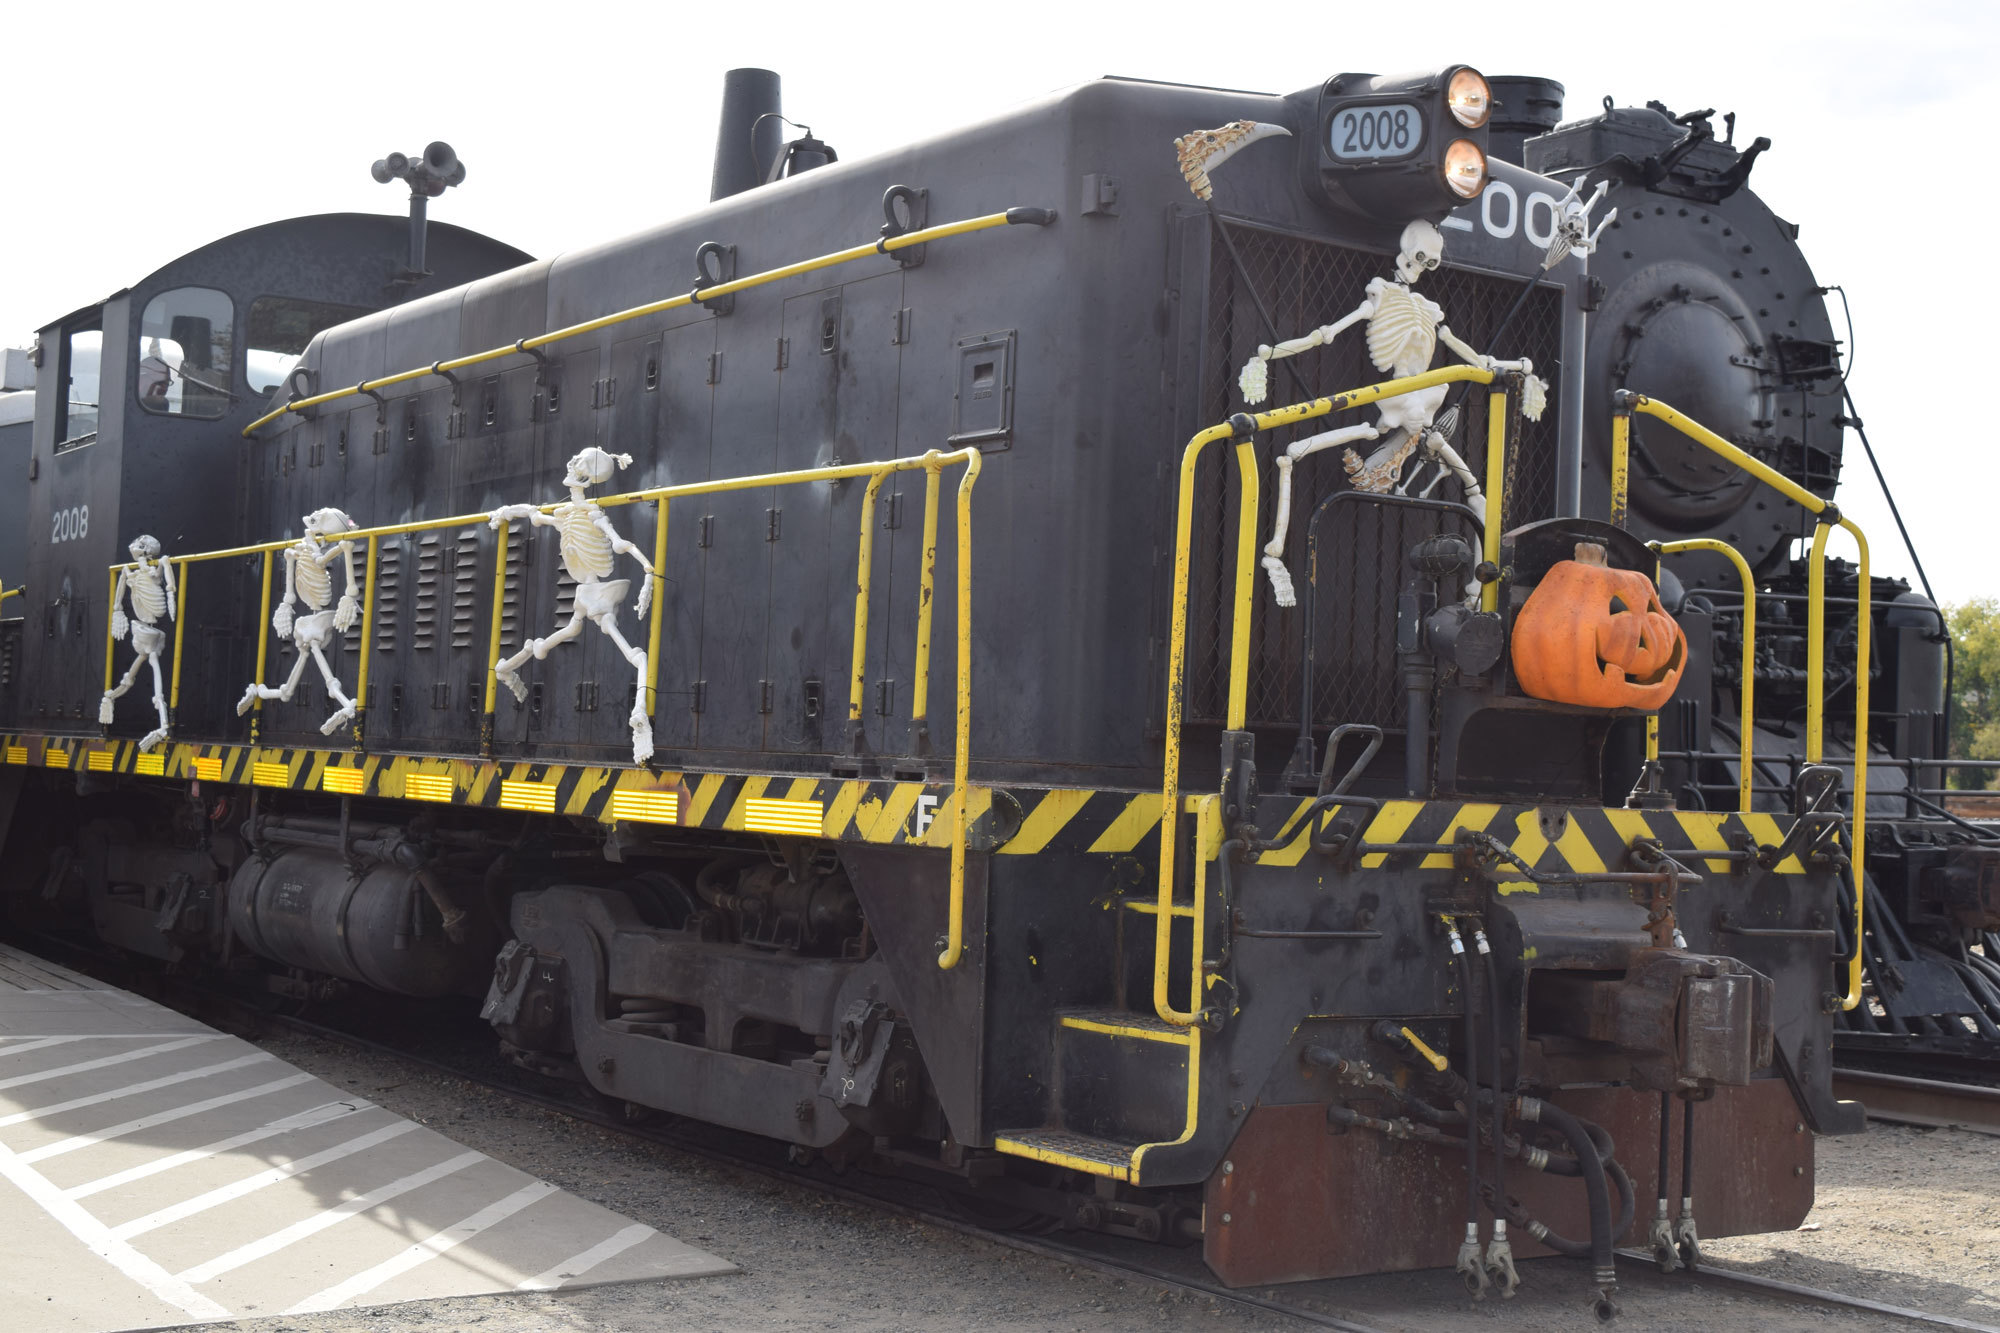 Spook Train